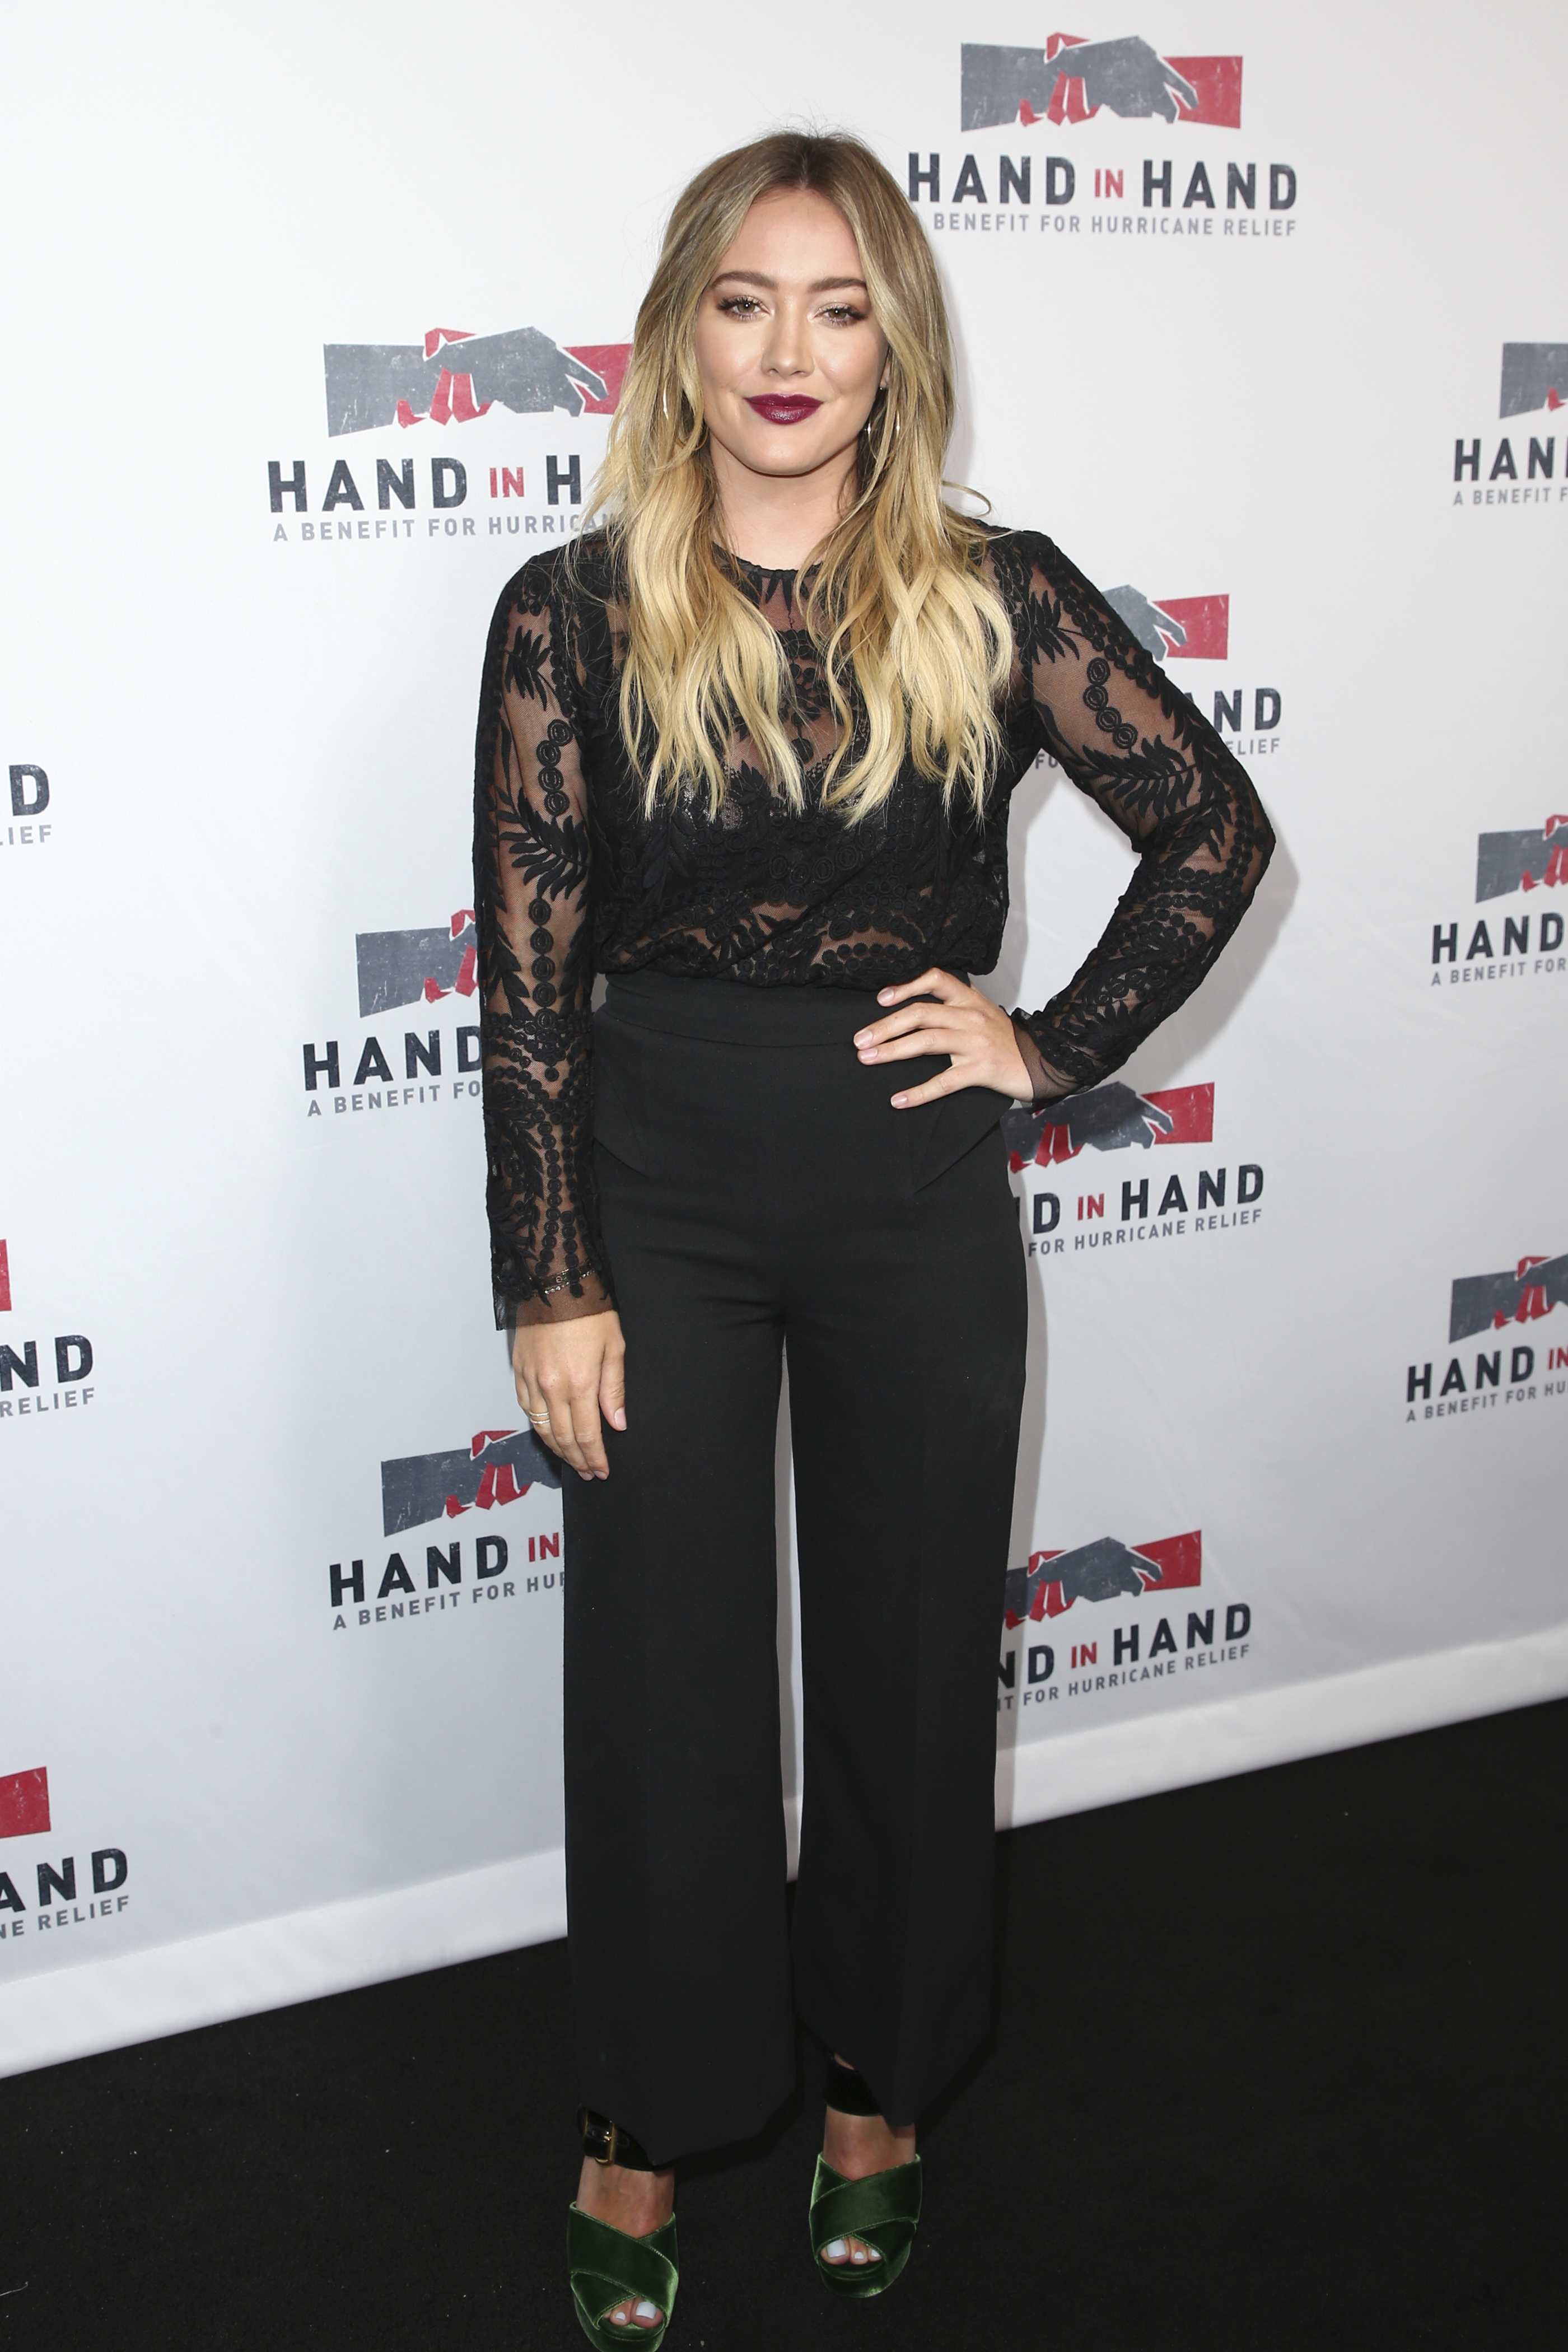 "<div class=""meta image-caption""><div class=""origin-logo origin-image none""><span>none</span></div><span class=""caption-text"">Hilary Duff attends the Hand in Hand: A Benefit for Hurricane Harvey Relief held at Universal Studios Back Lot on Tuesday, Sept. 12, 2017 in Universal City, Calif. (John Salangsang/Invision/AP)</span></div>"